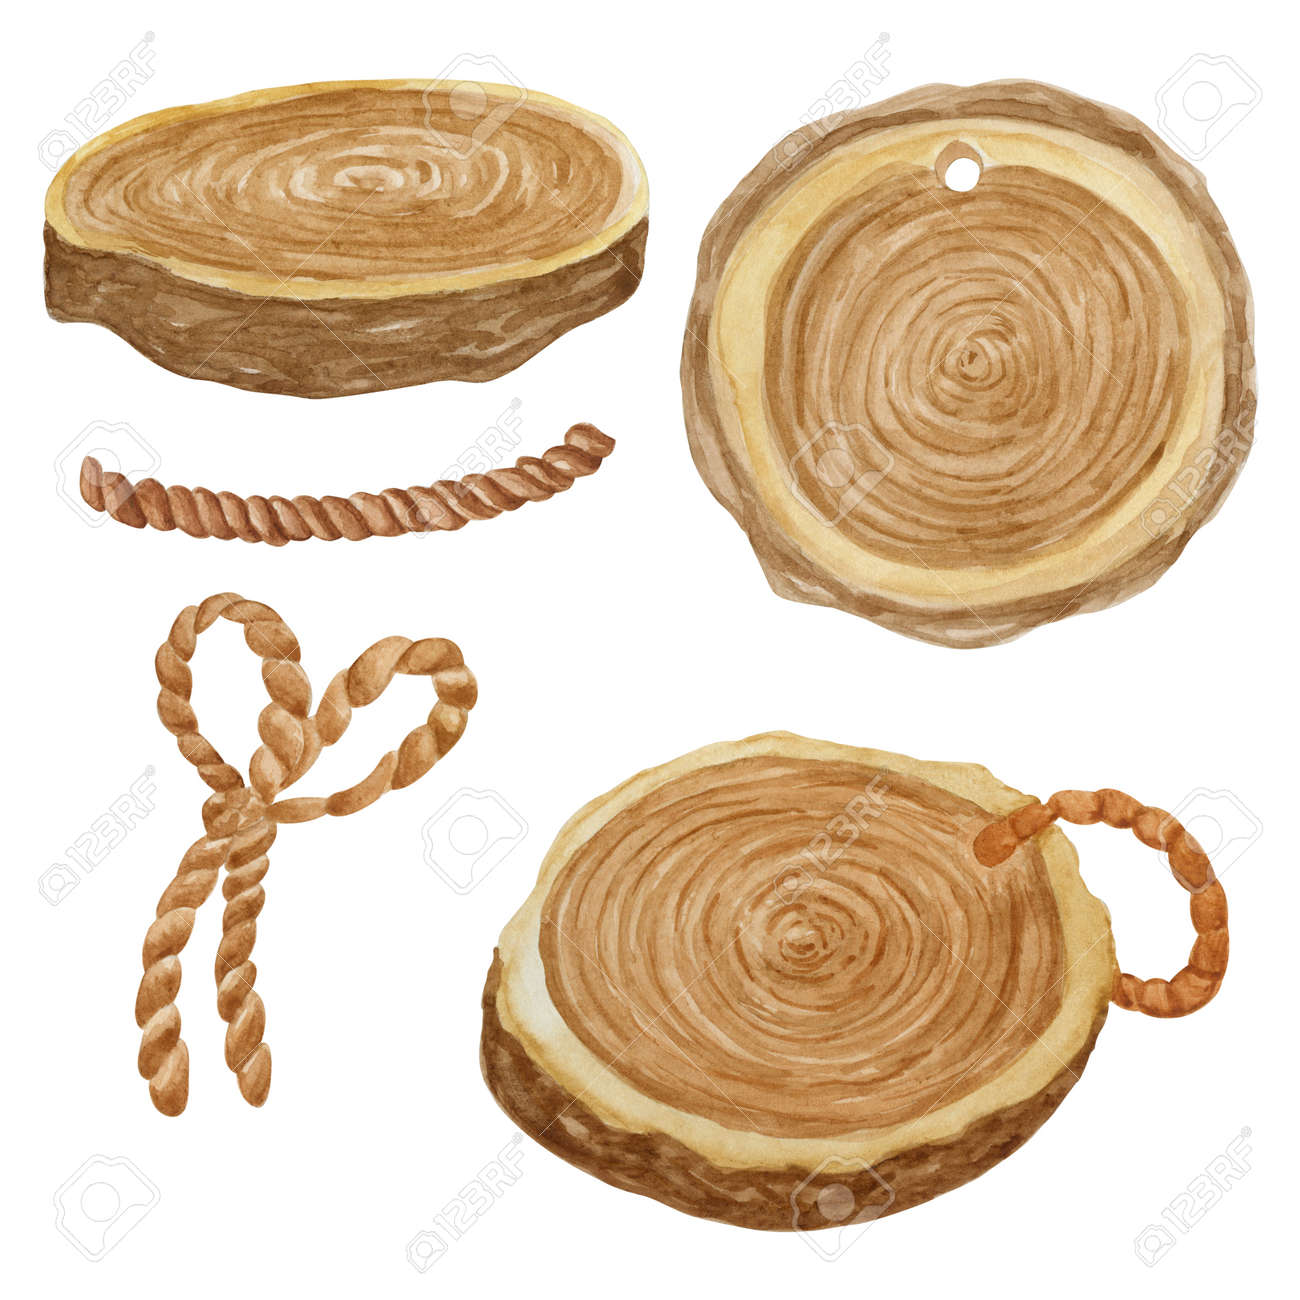 Wooden cut collection watercolor illustration. Wood coaster set isolated on white background. - 156489658